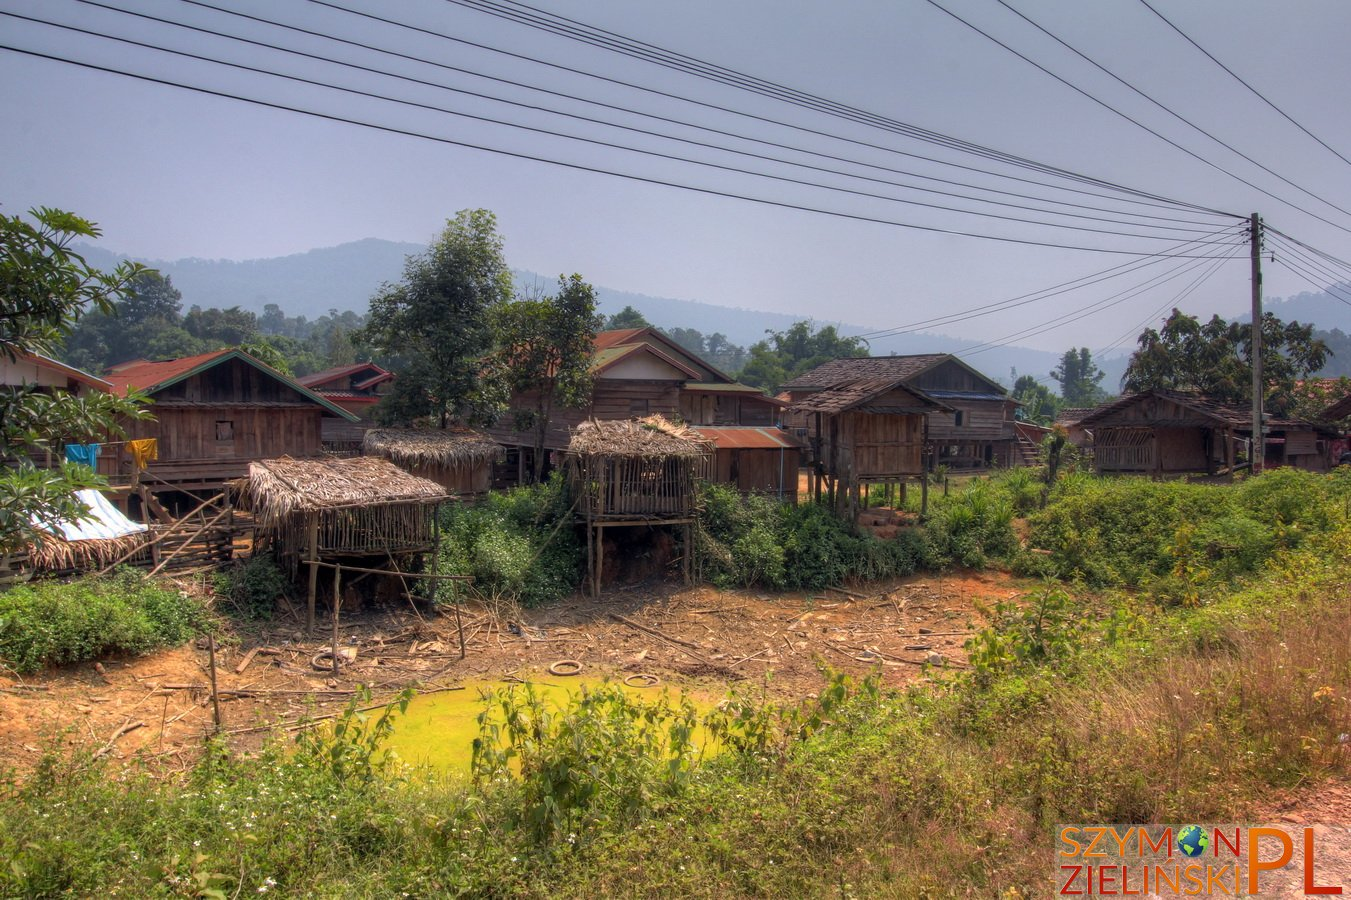 Tha Khaek Loop, Laos - Day 2 - Ban Oudomsouk to Kong Lo